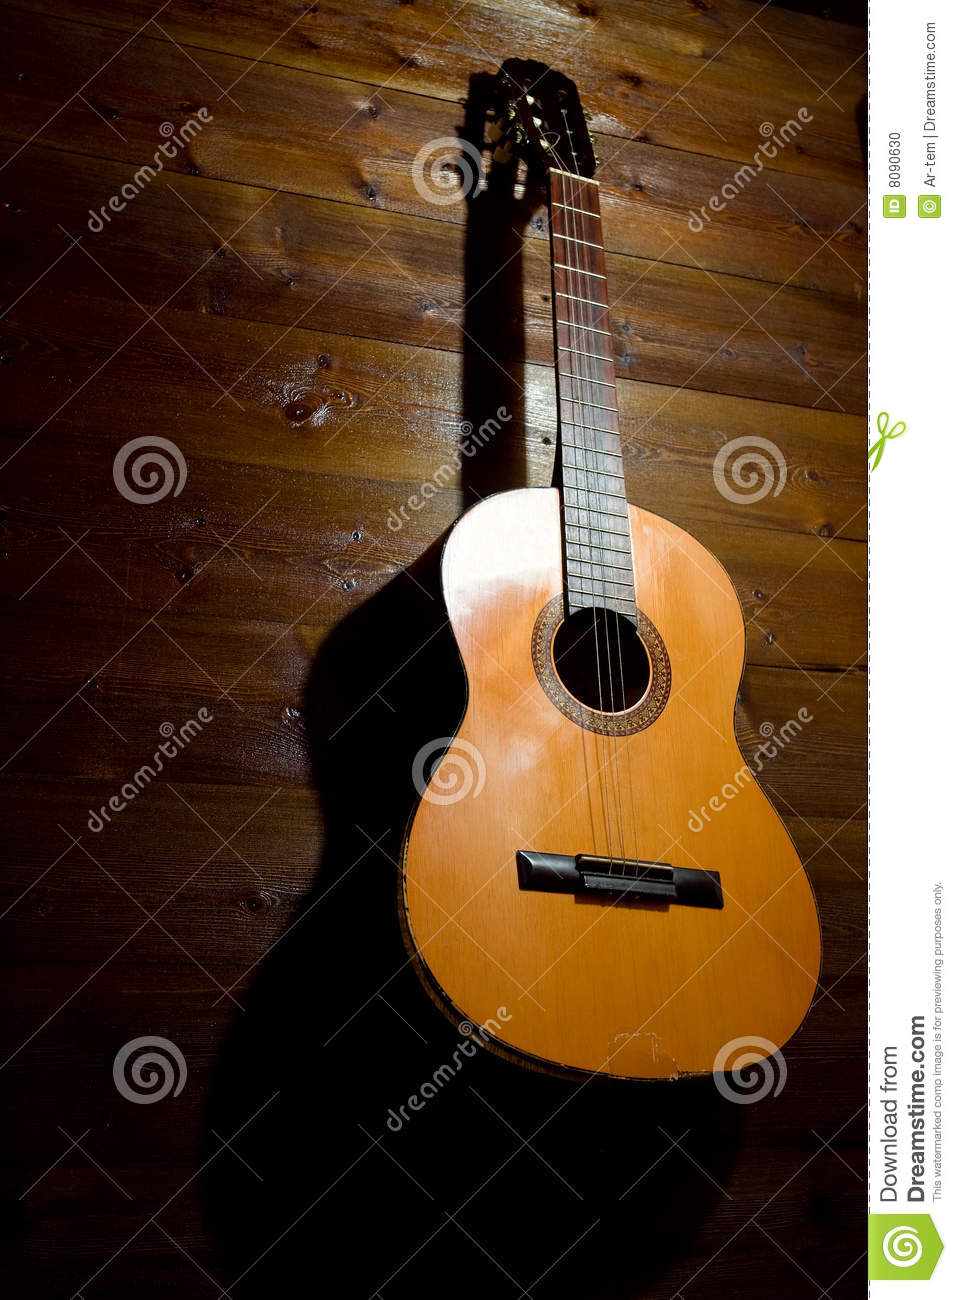 Guitare vieille